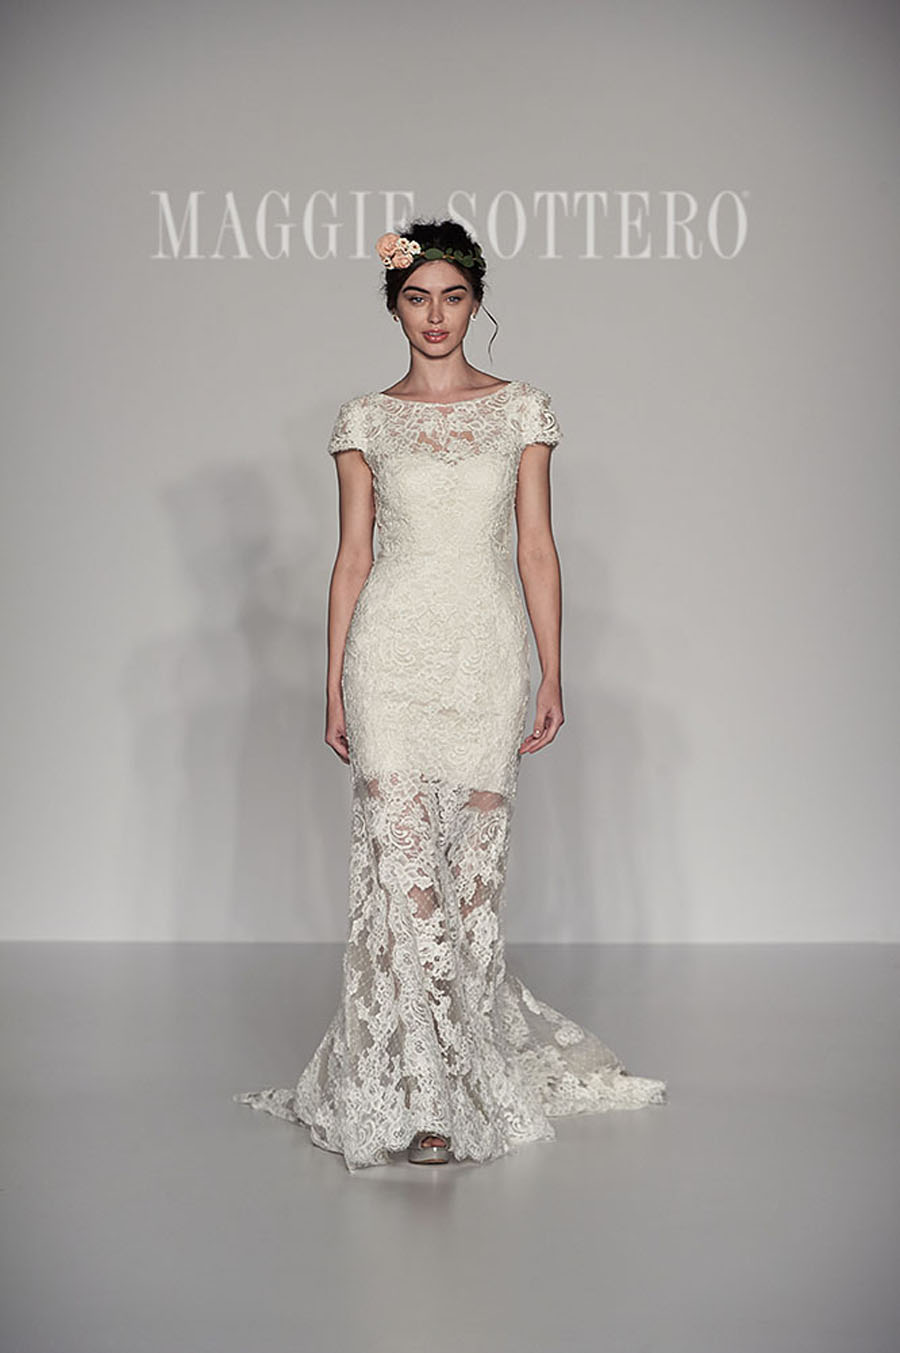 Maggie Sottero Spring 2017 Collection - hudson Front